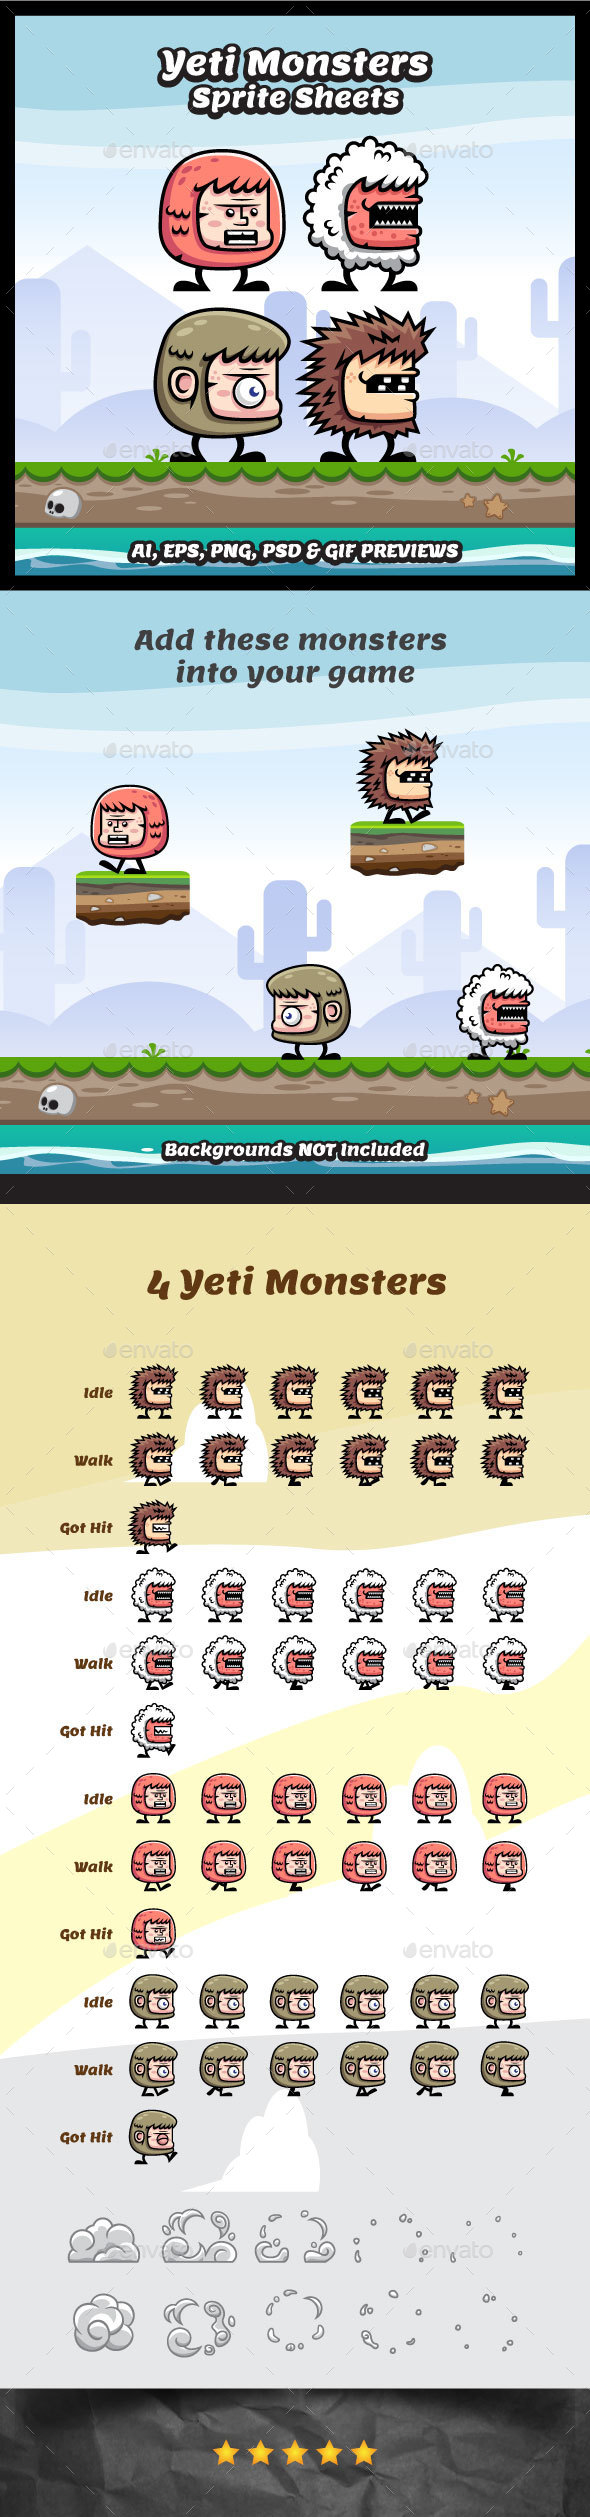 Yeti Monster Sprite Sheets - Sprites Game Assets